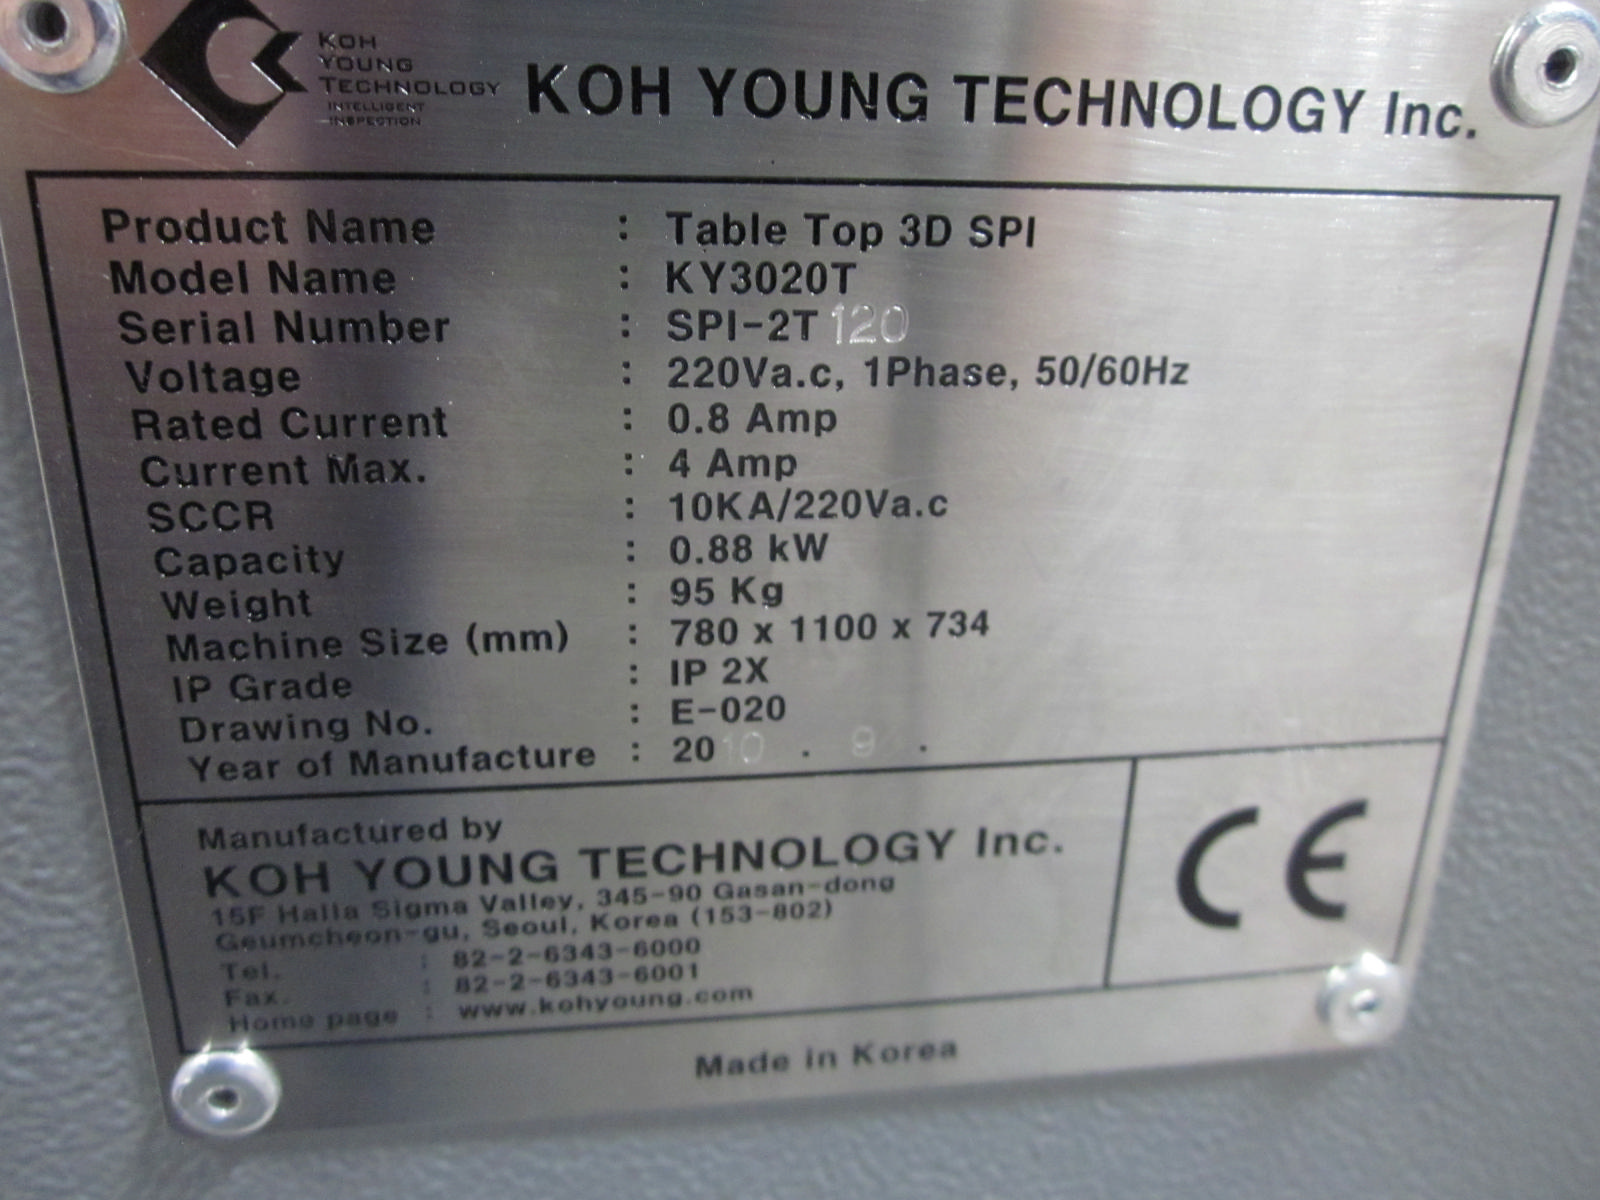 Koh Young KY3020T 3D SPI Table Top System   112304